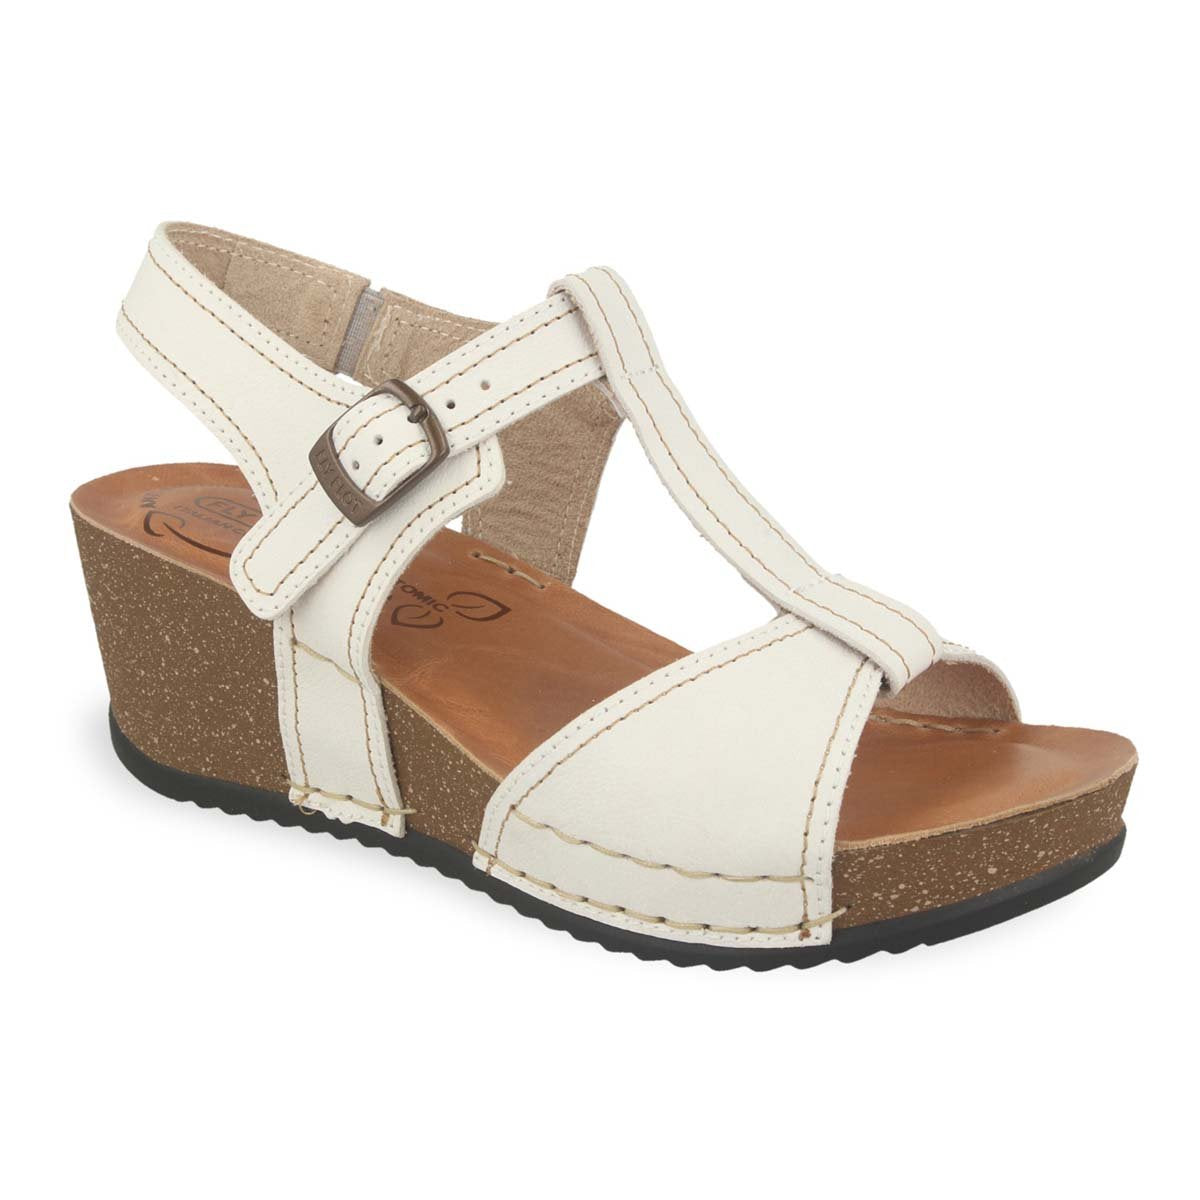 Photo of the Leather Woman Sandal White (33e43bg)